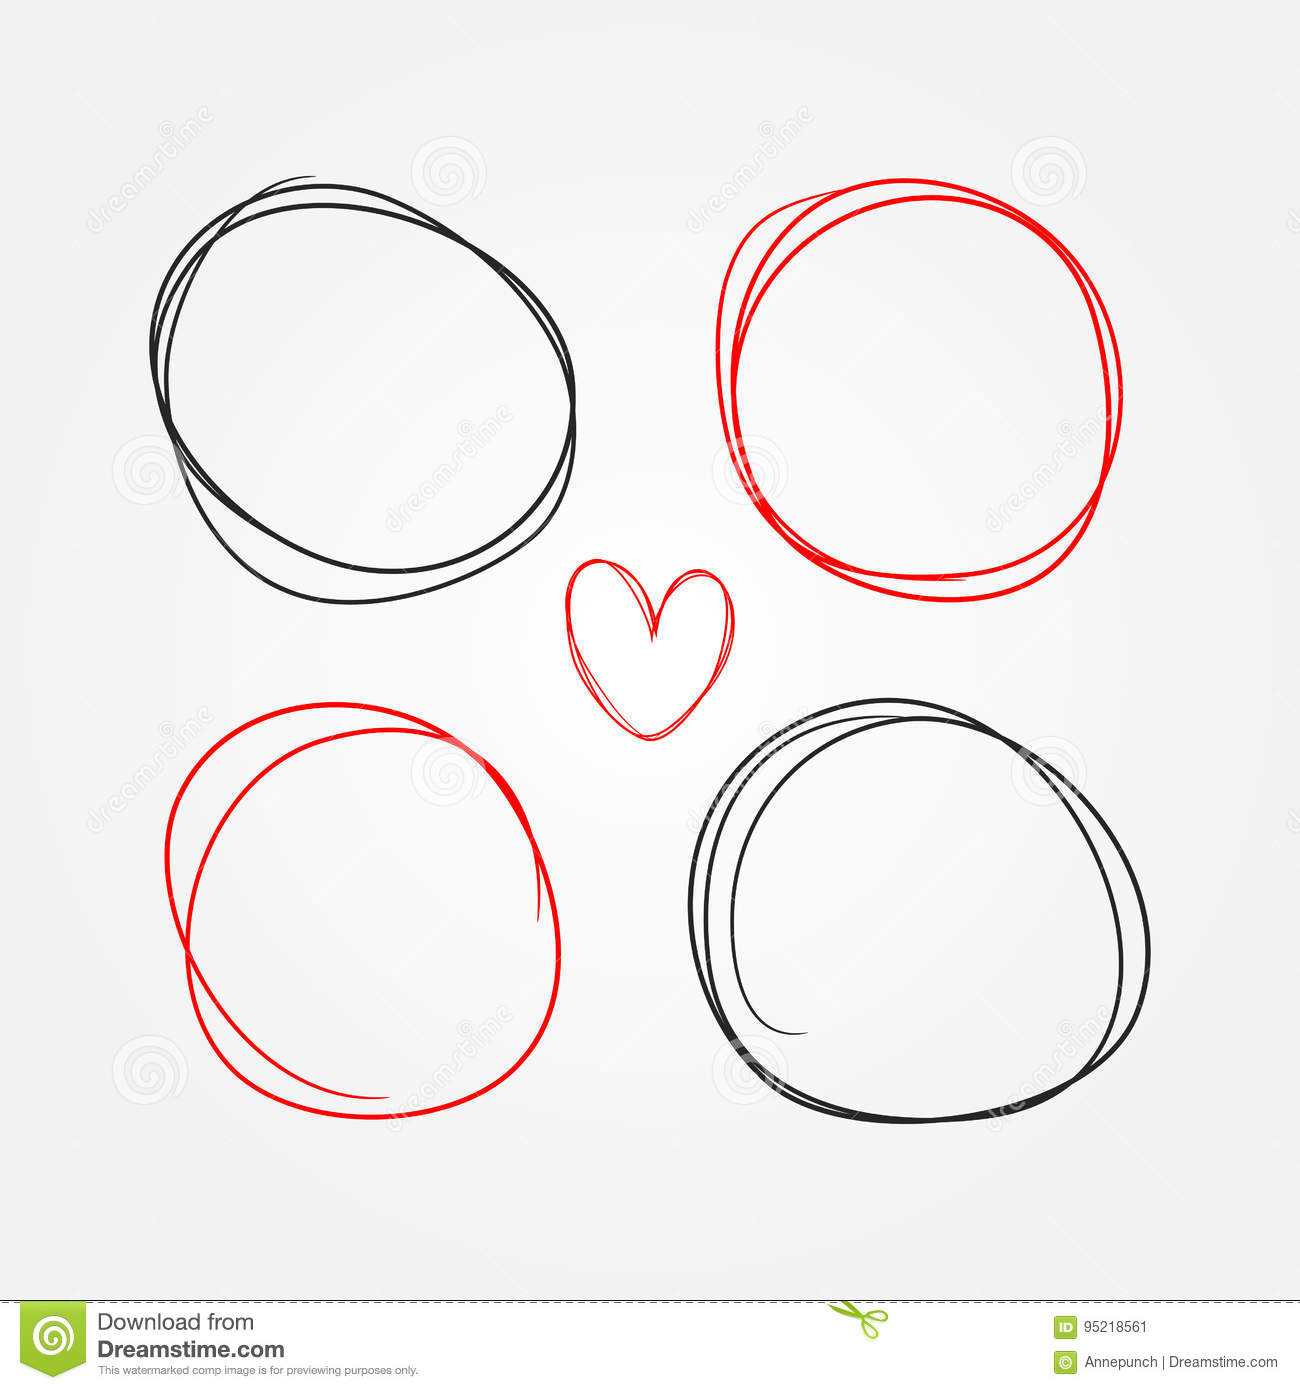 Set of heart and round frames painted by hand. Sketch, doodle, scribble.